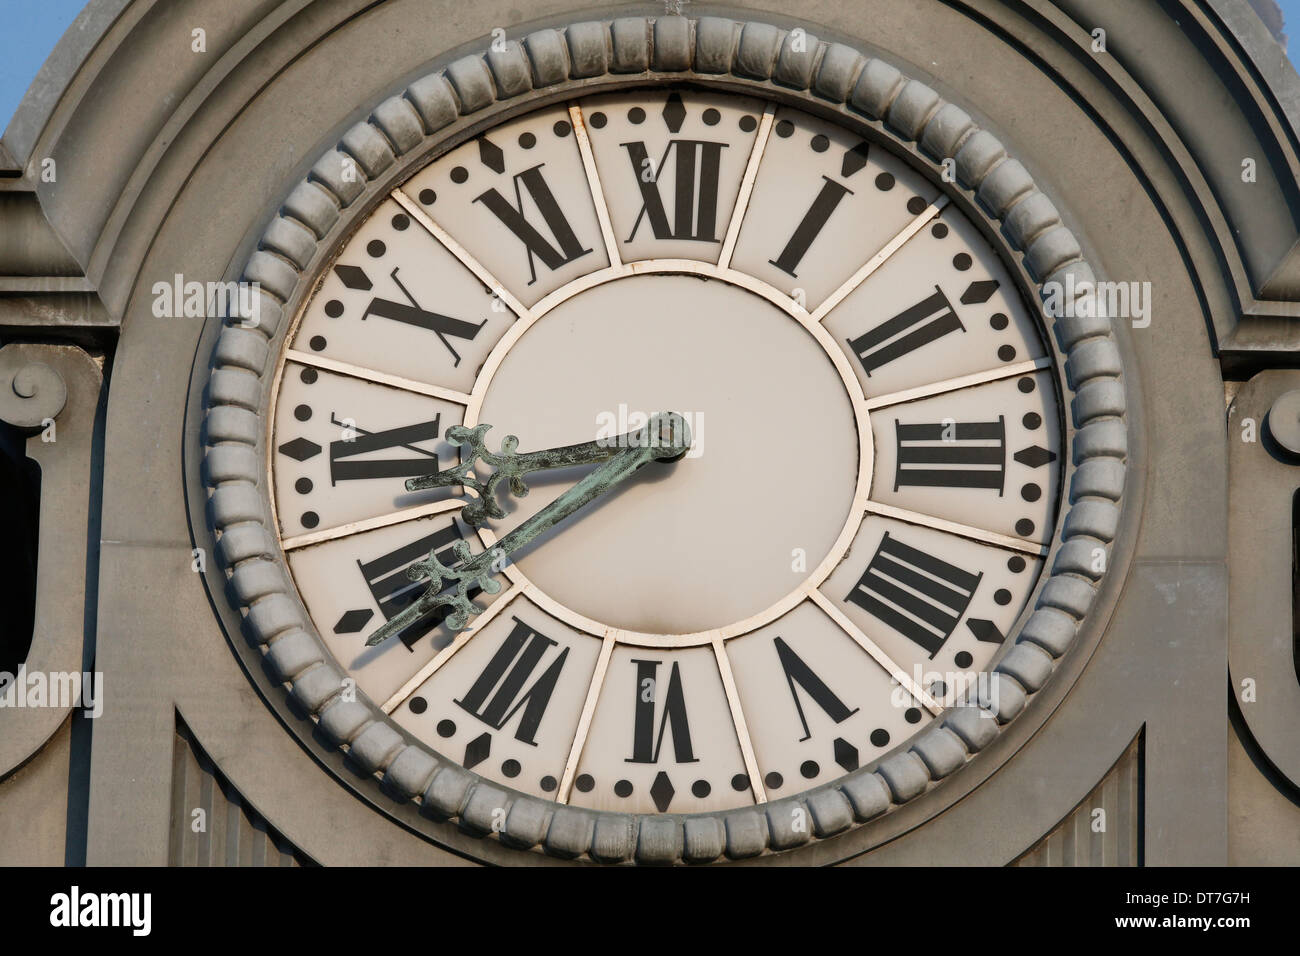 Town council clock tower. - Stock Image